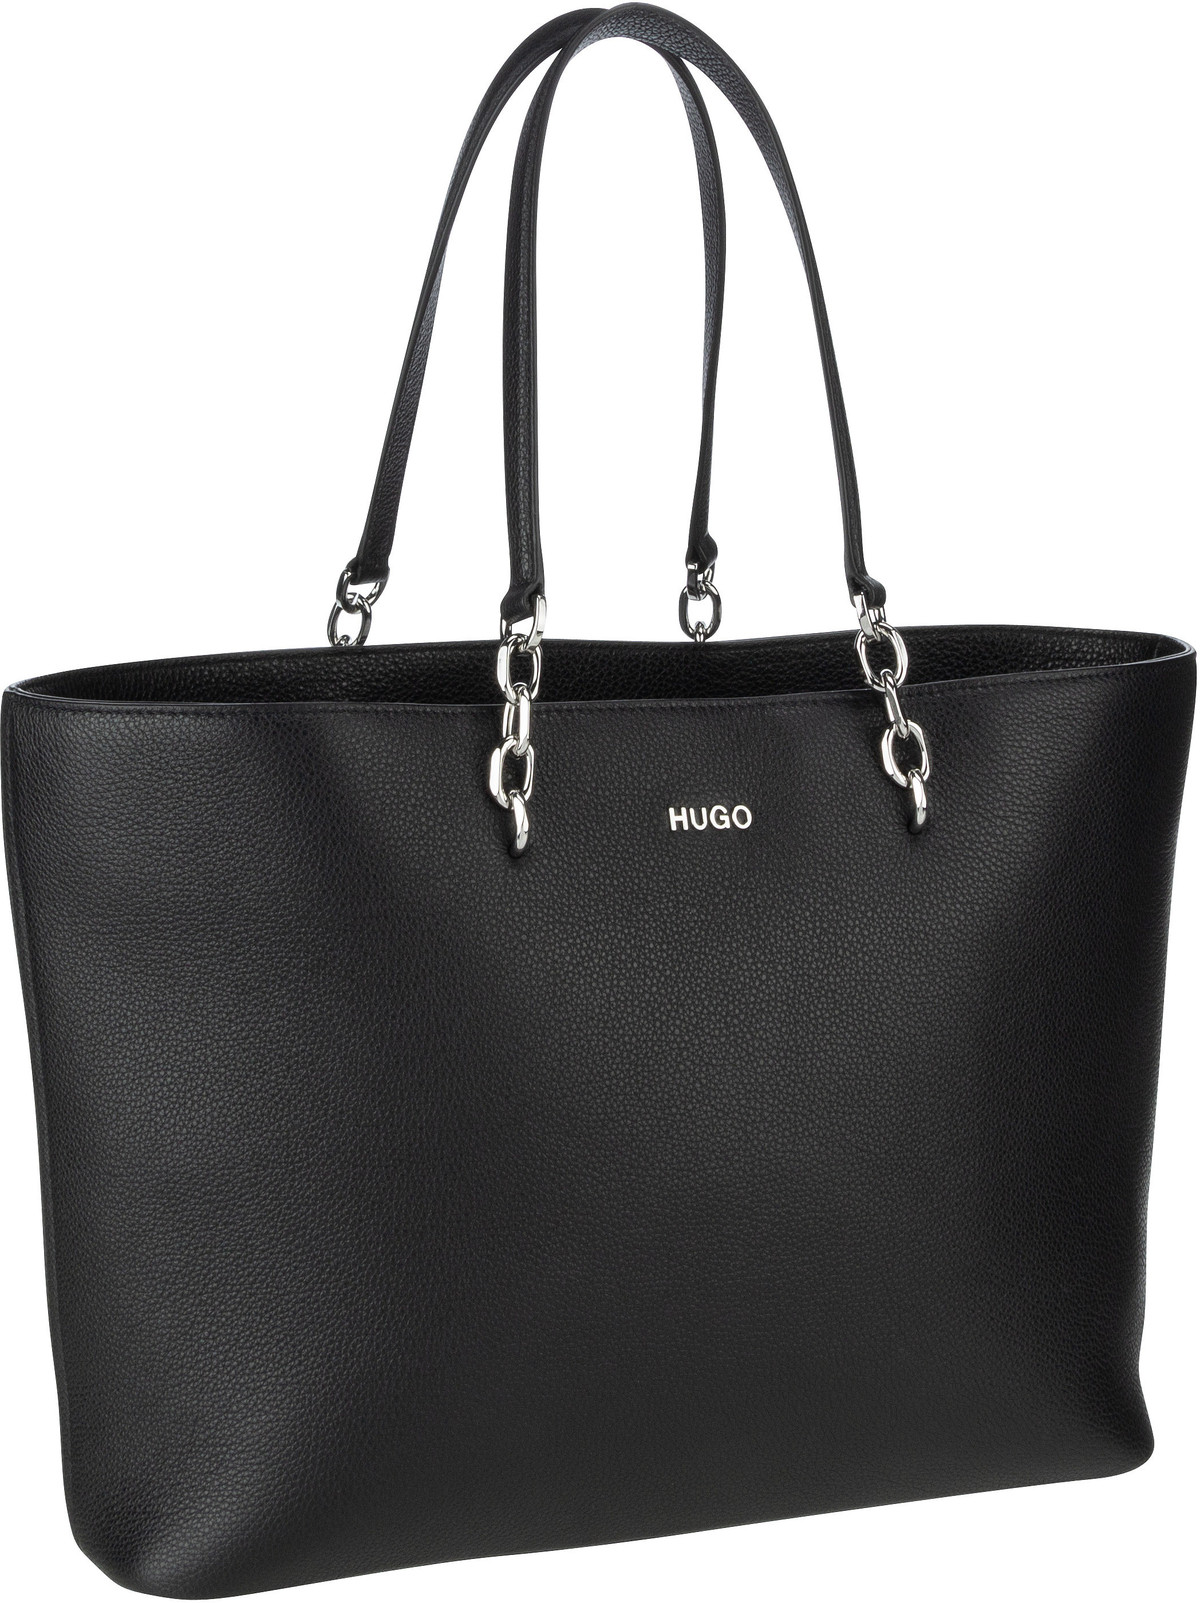 HUGO Handtasche Victoria Shopper 428513 Black